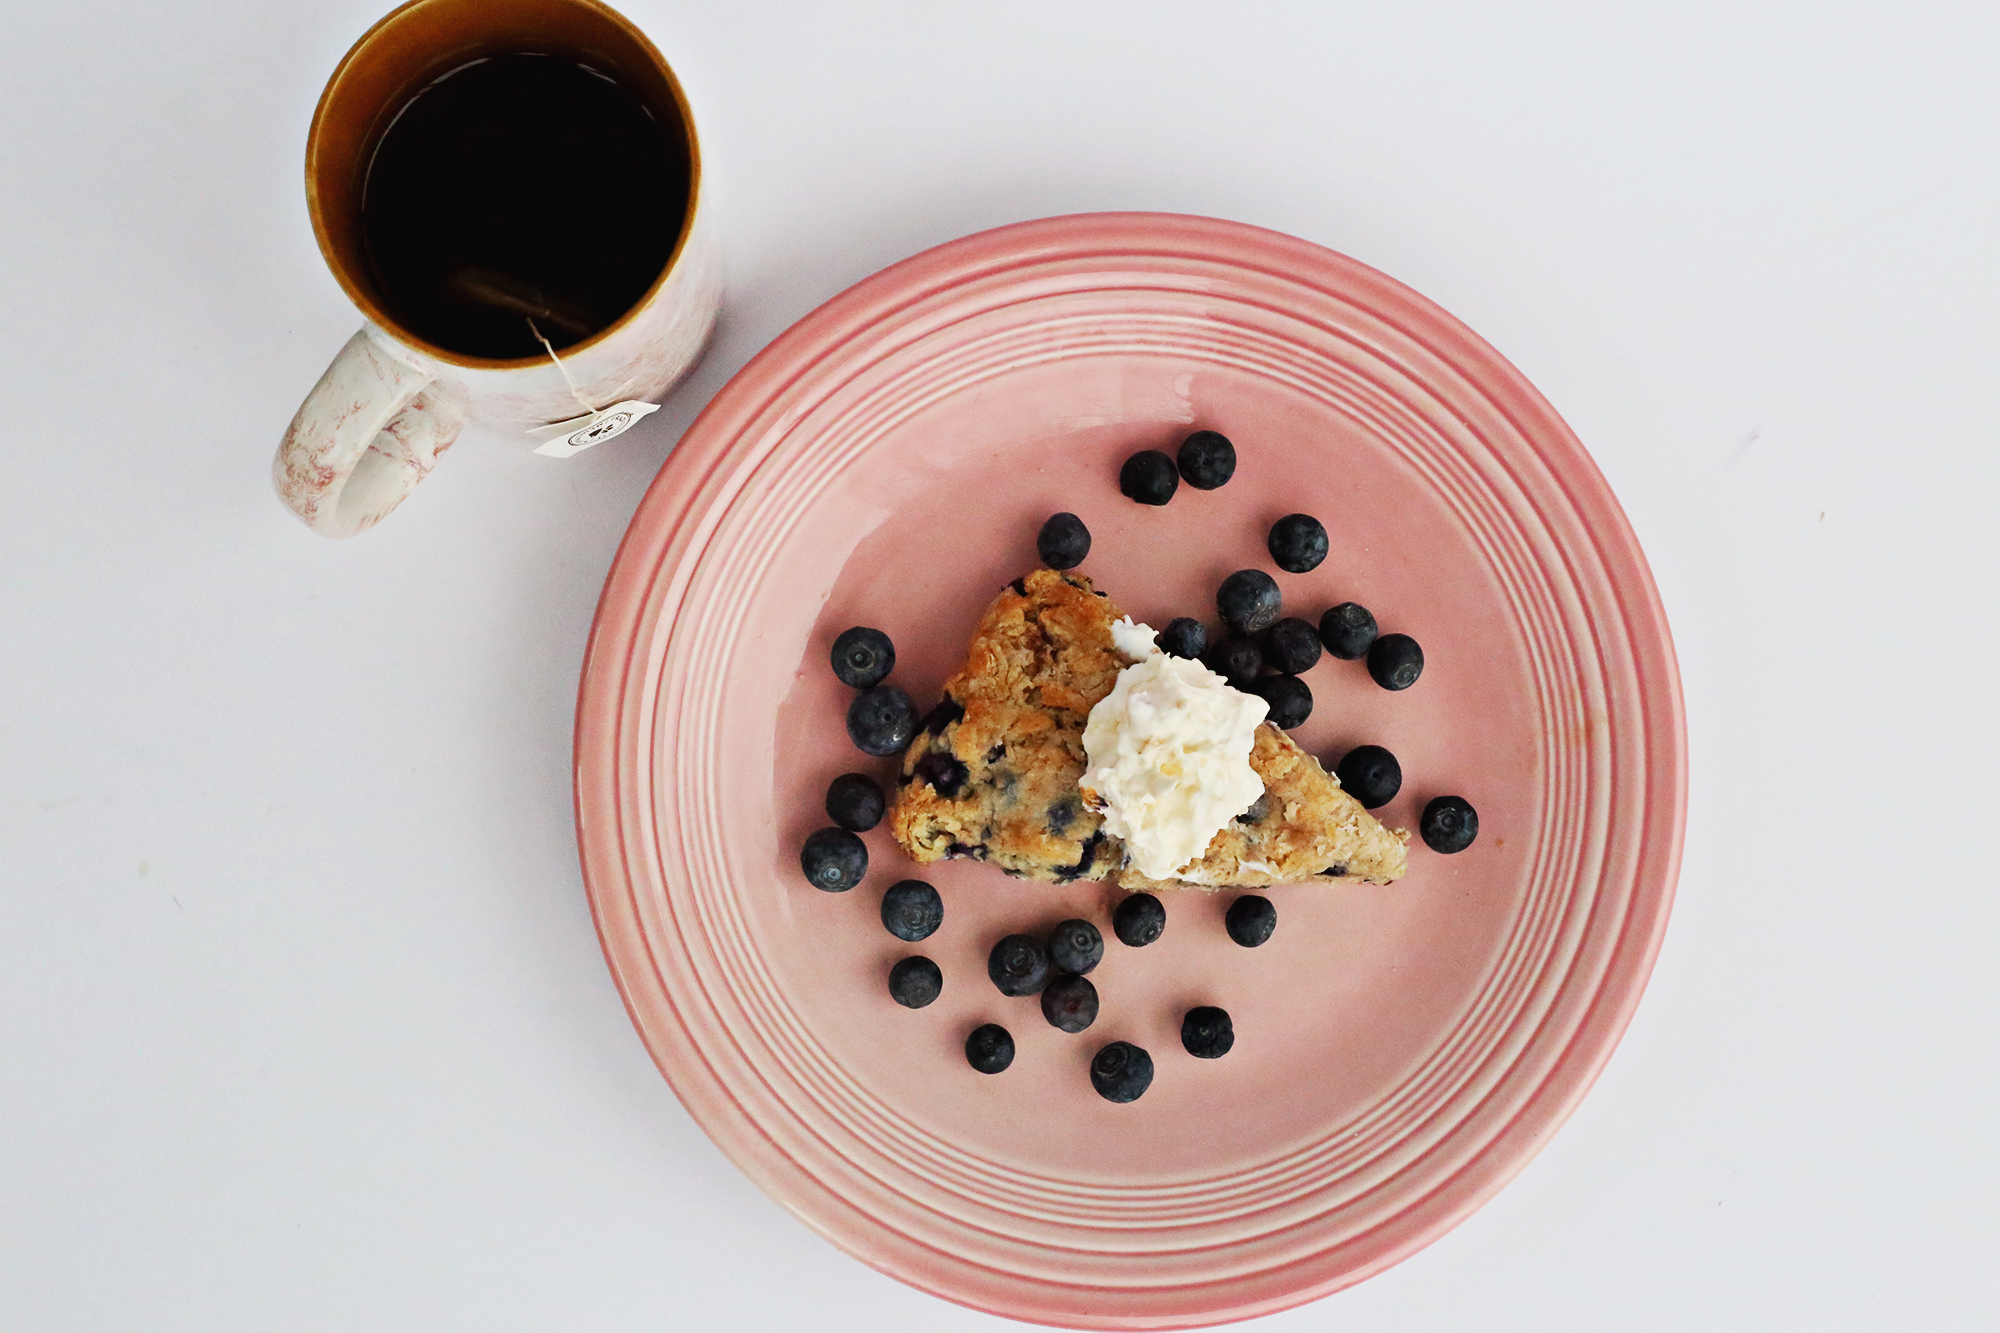 Bring back tea time, by mixing up a batch of delicious blueberry scones with clotted cream.